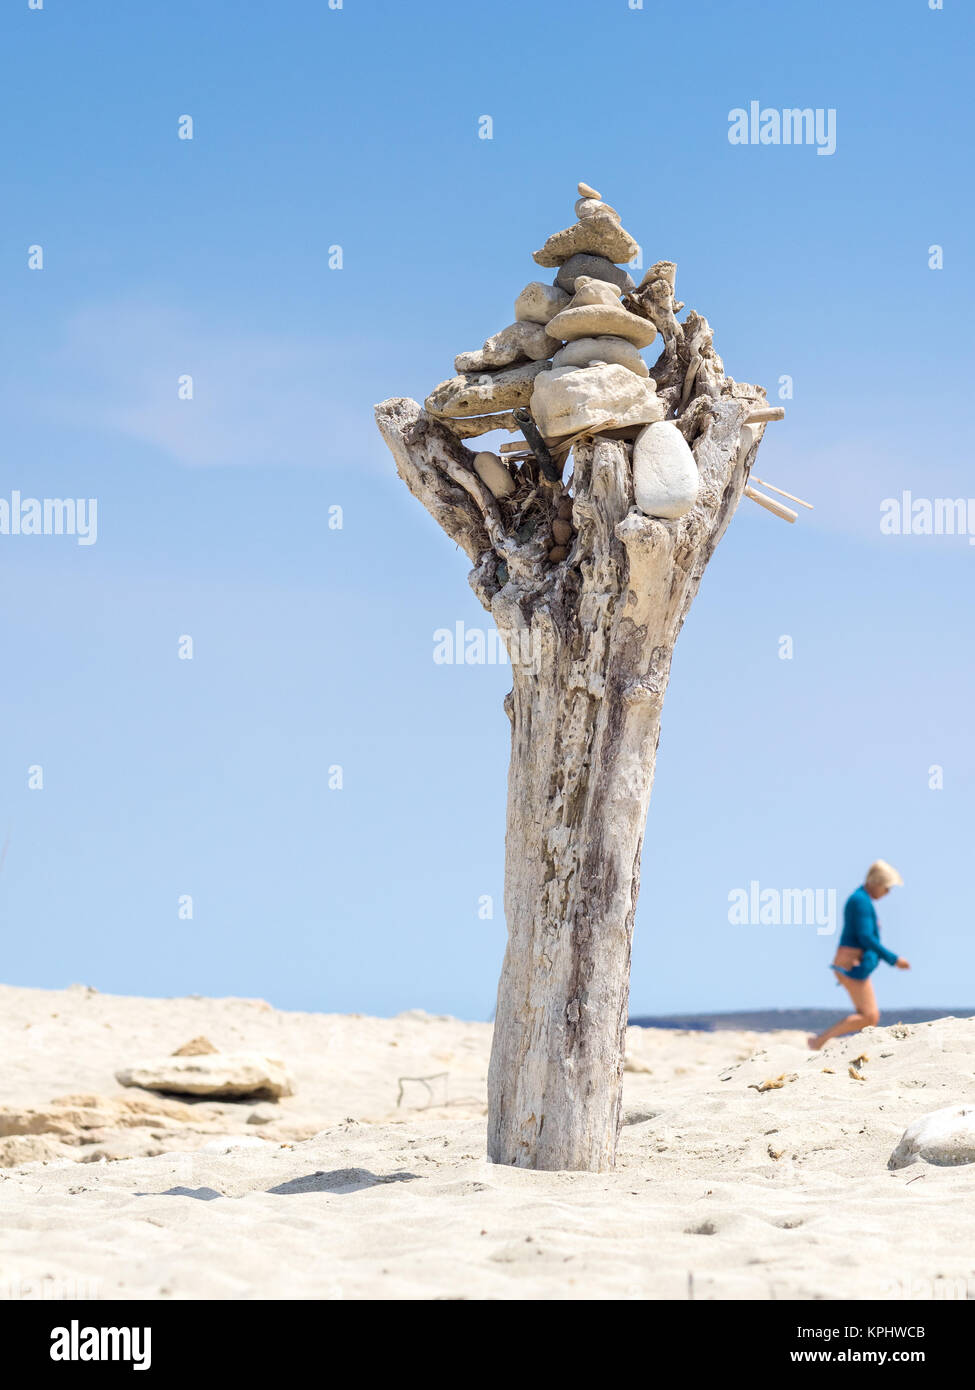 Typical compositions seen in Ses Illetes, Formentera, Spain - Stock Image